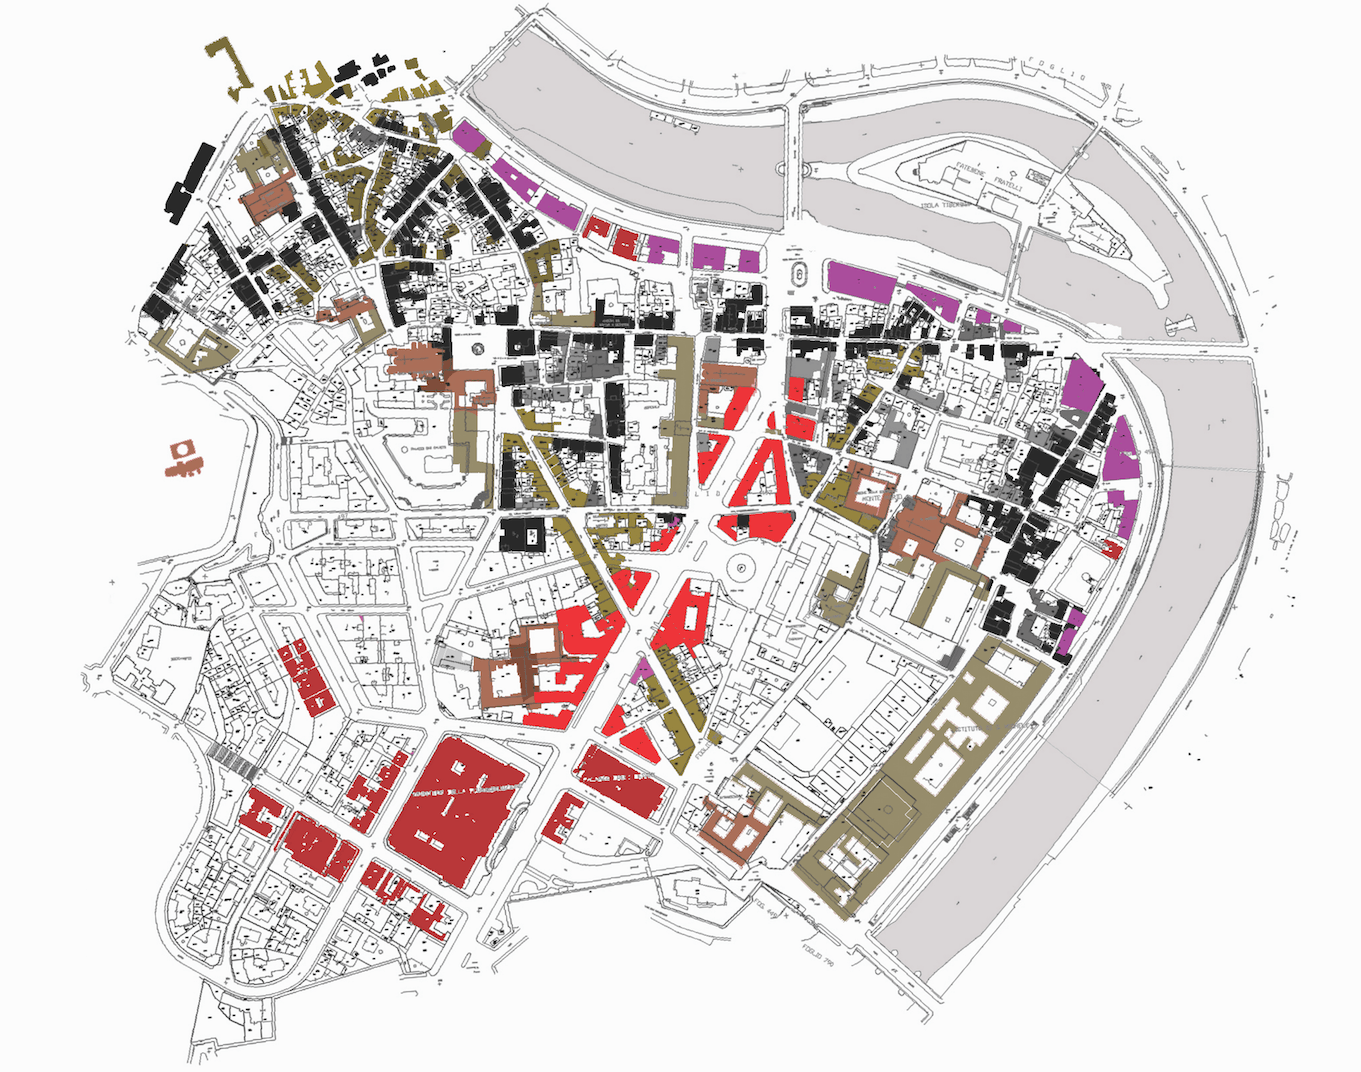 URBAN MORPHOLOGY APPROACHES-BRIEFING PAPERS